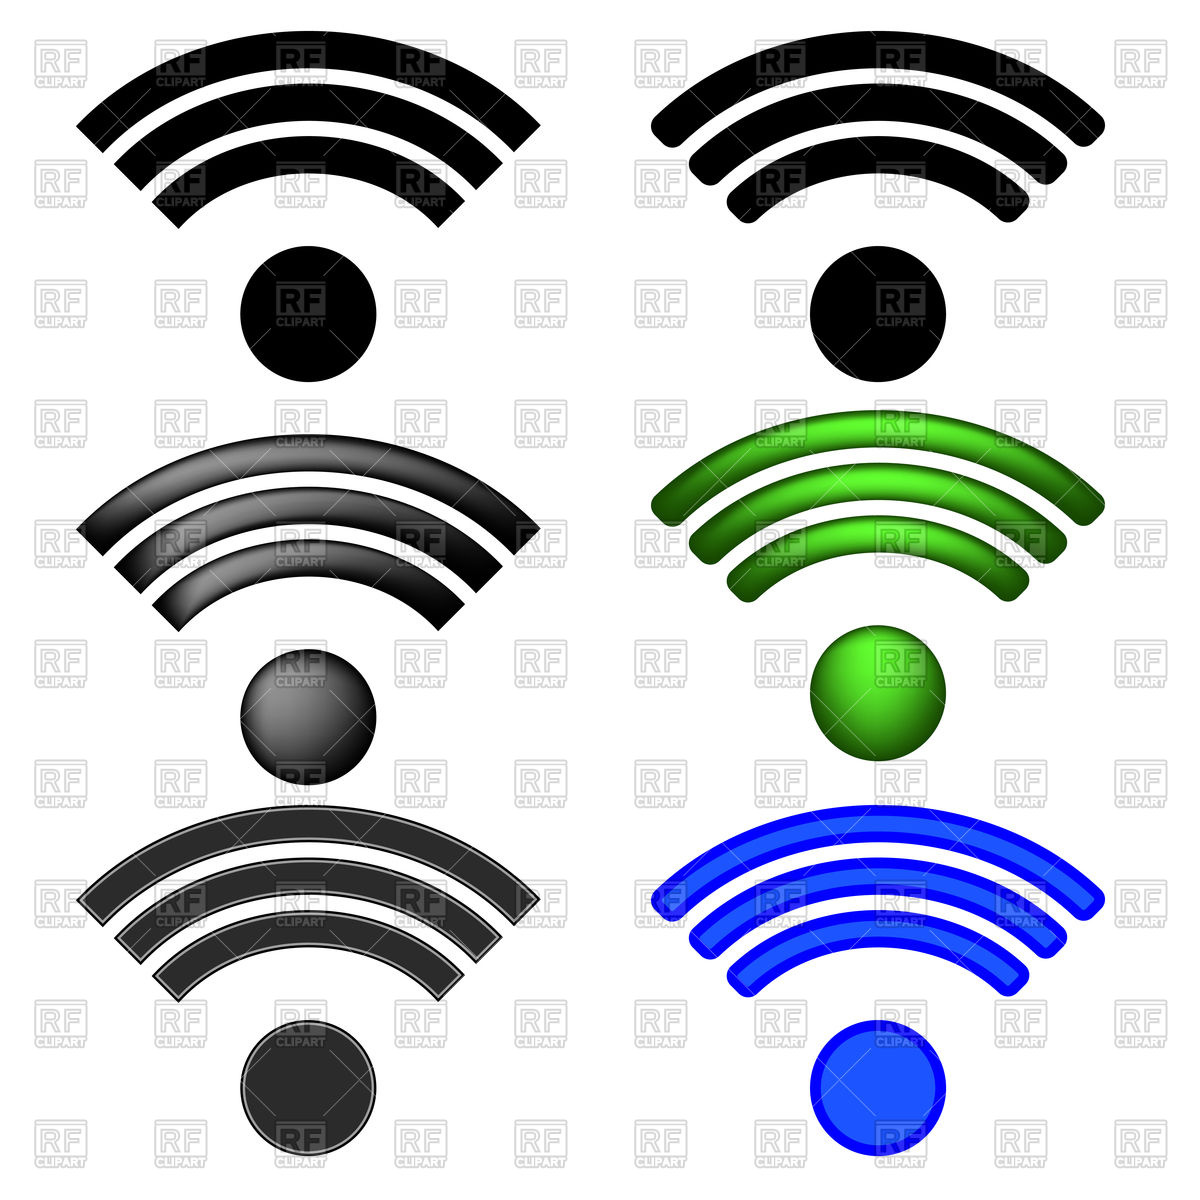 1200x1200 Set Of Wifi Icons Vector Image Vector Artwork Of Signs, Symbols